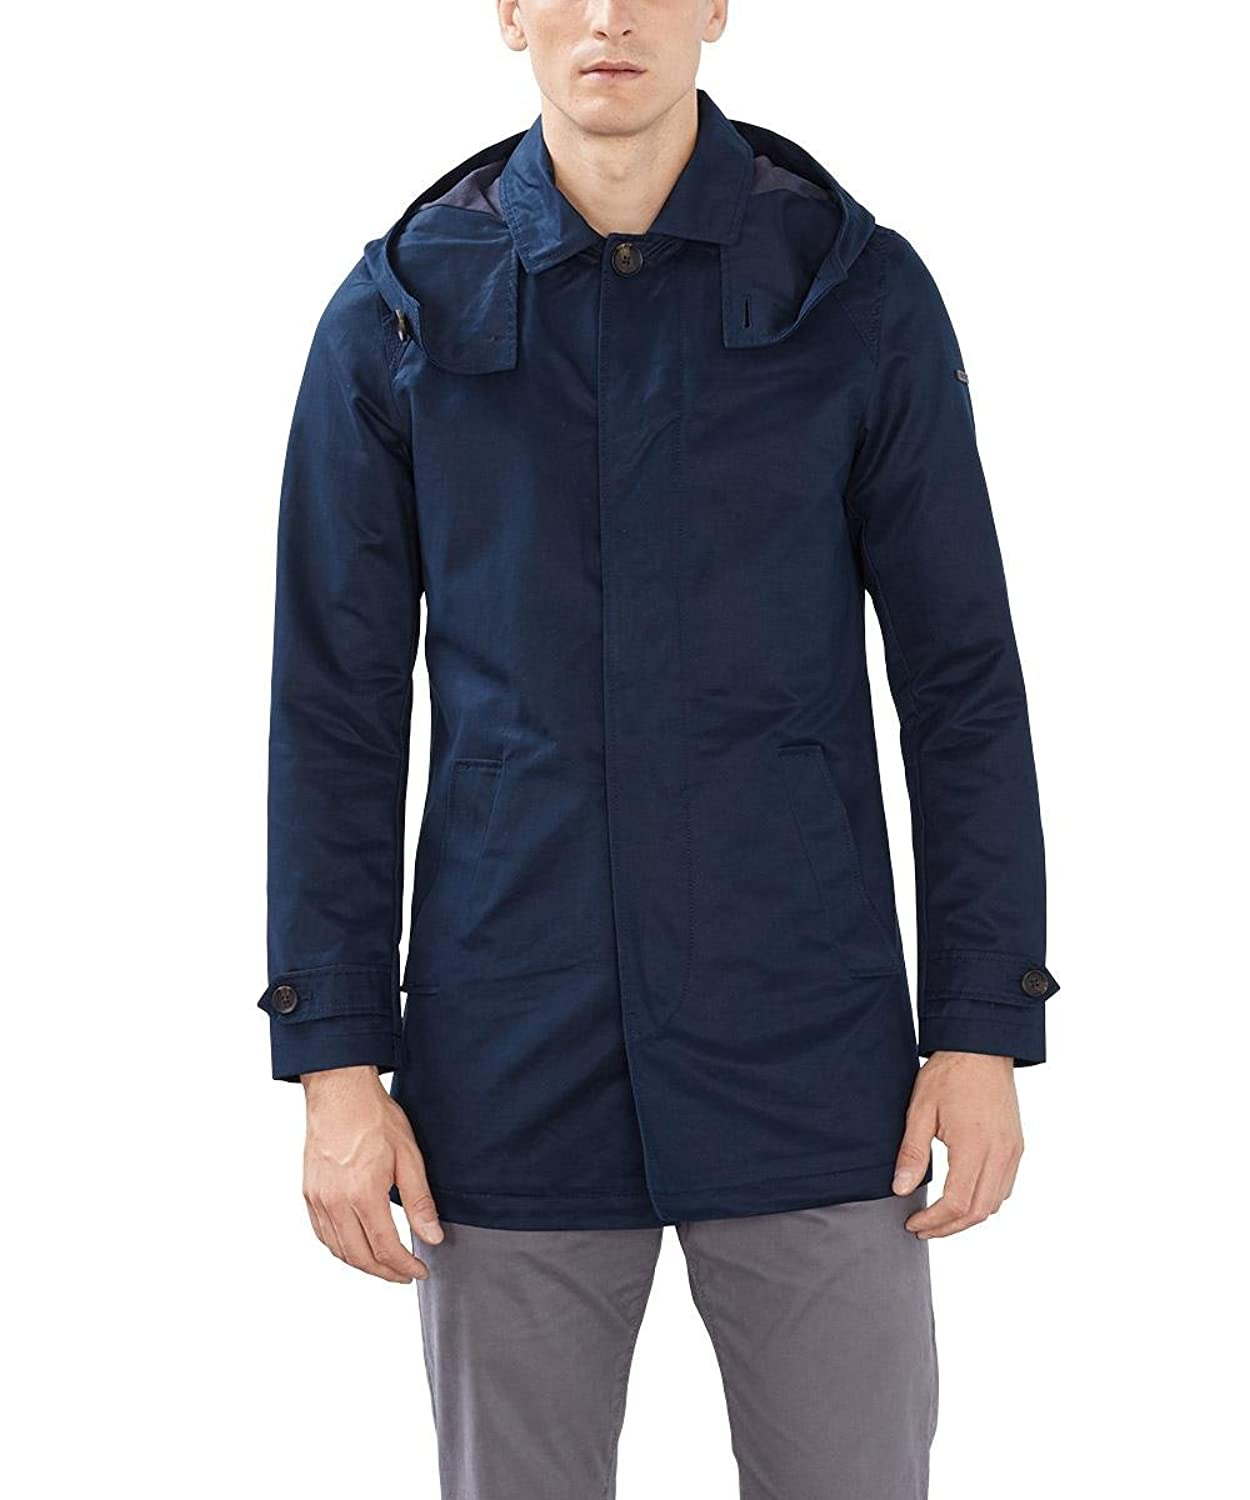 ESPRIT Collection Herren Mantel 086eo2g020